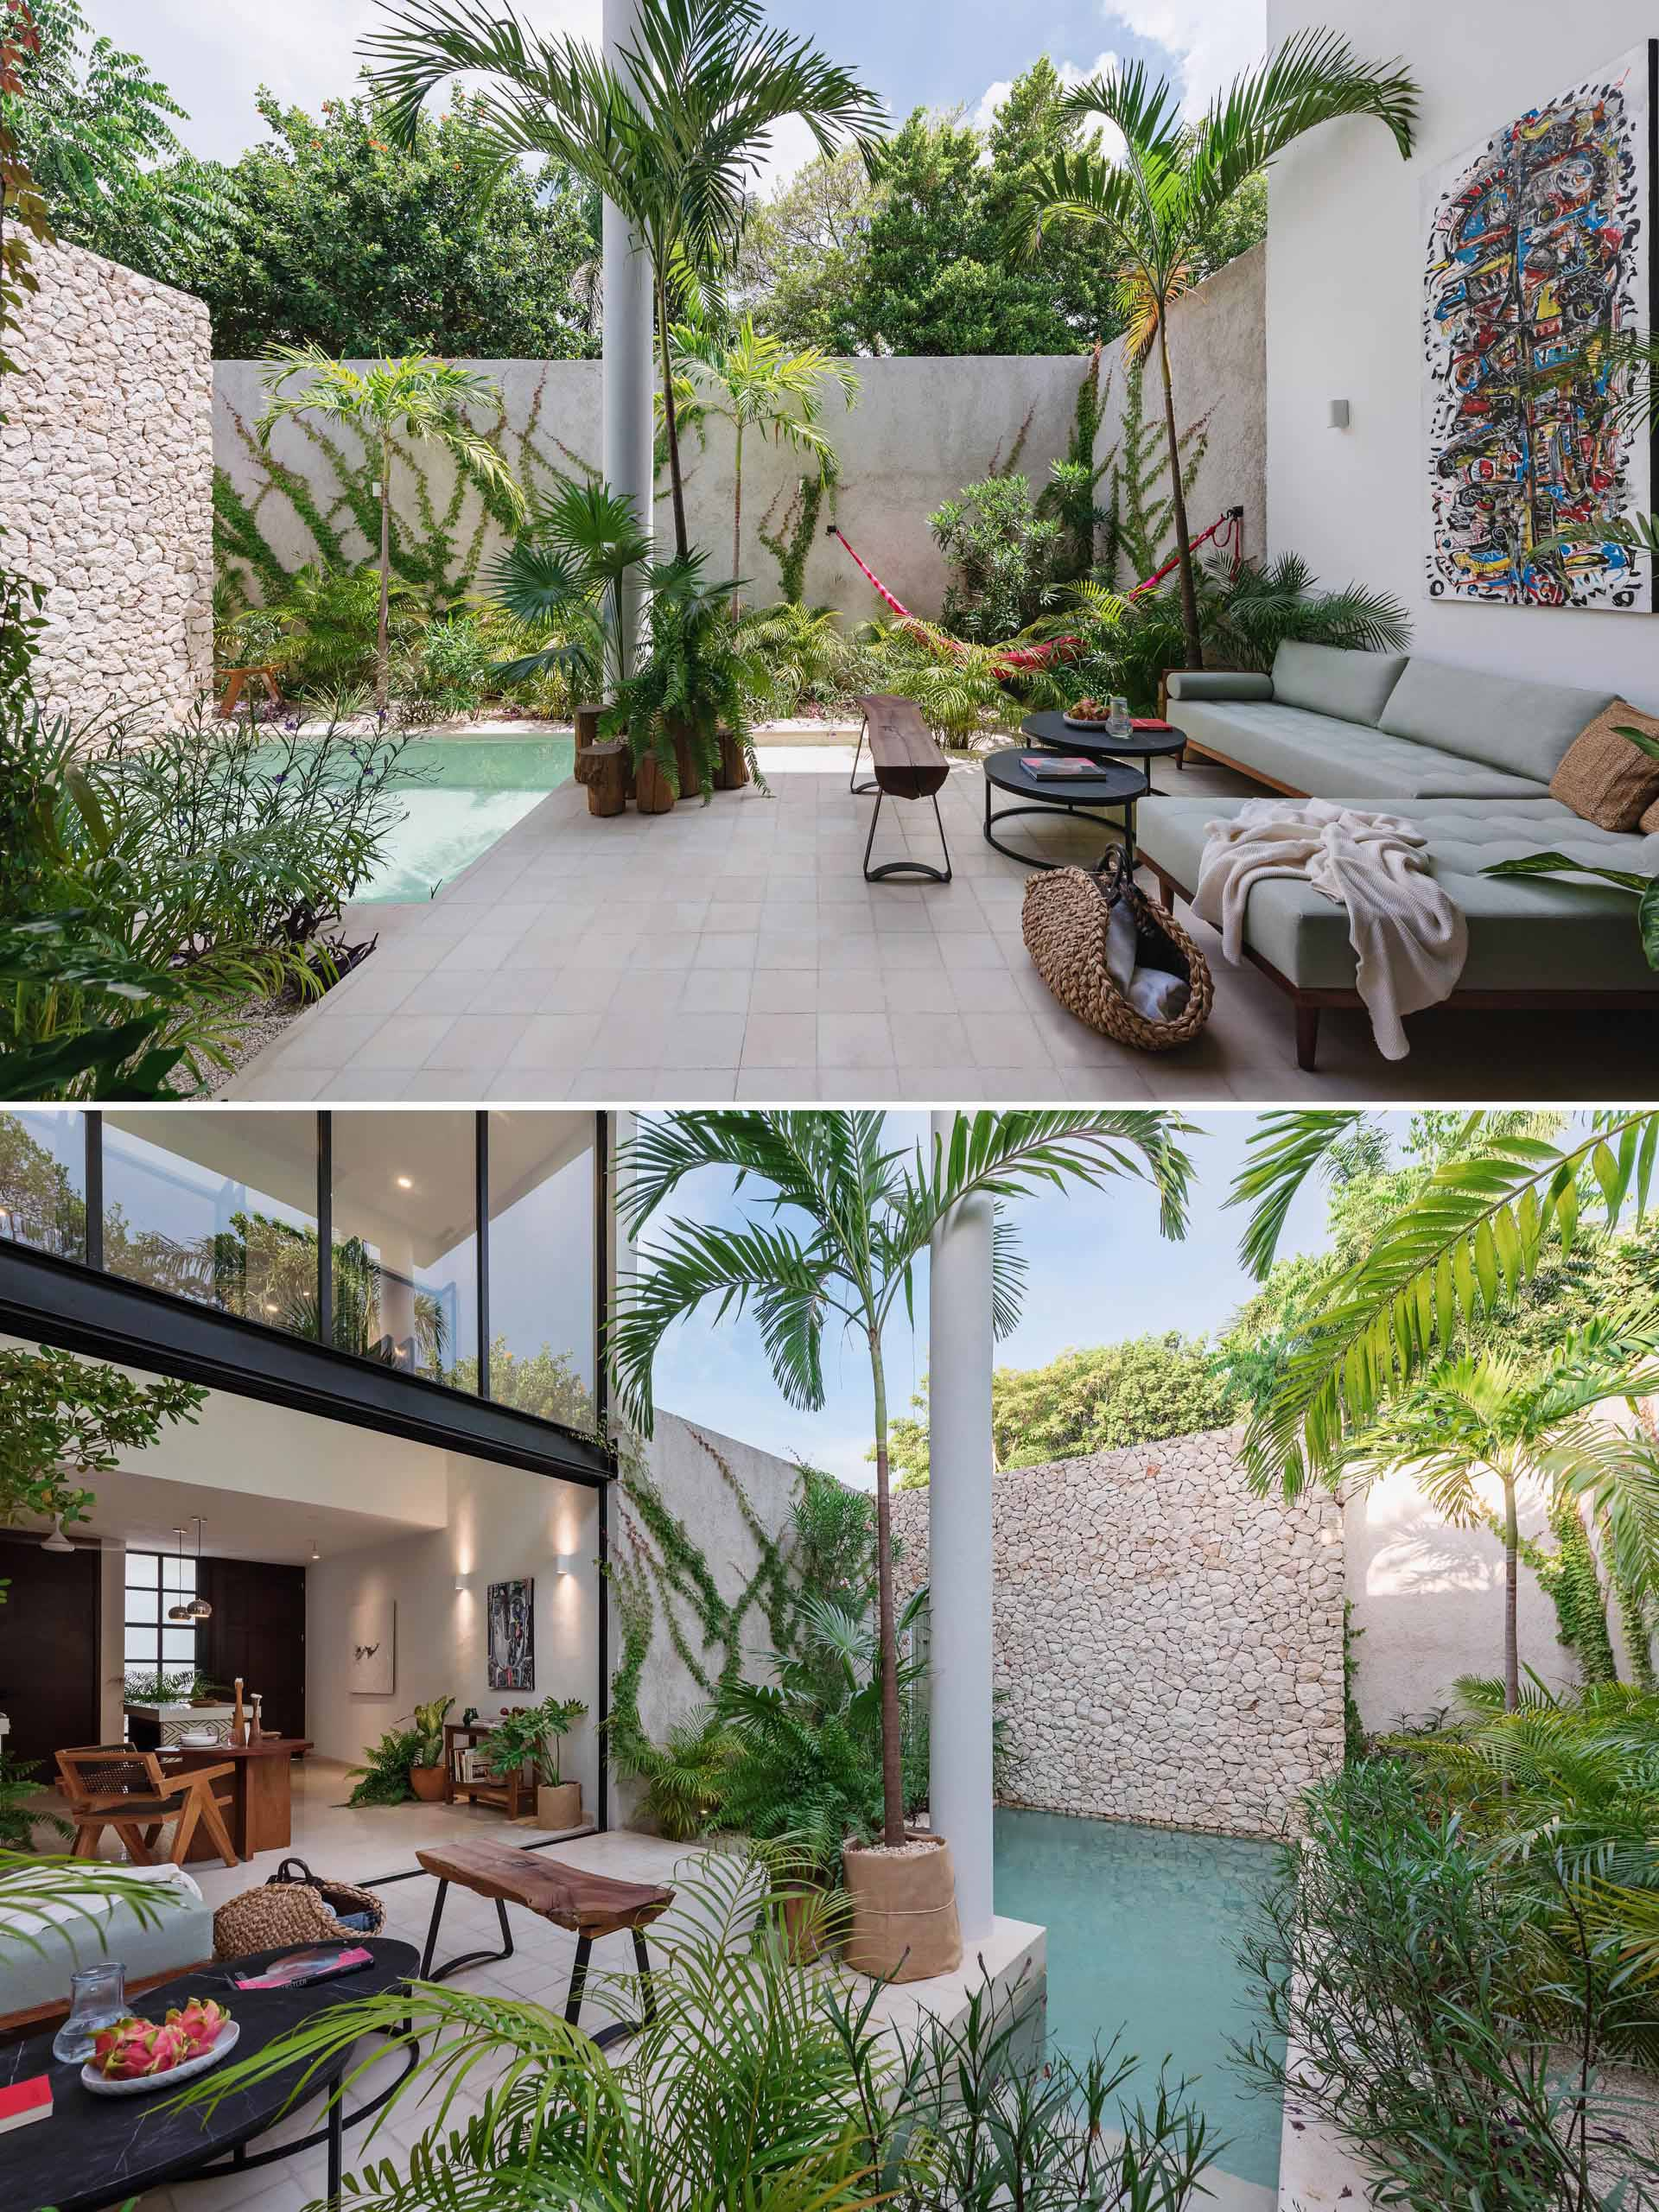 A small house with an outdoor living room, tropical plants, and small pool.